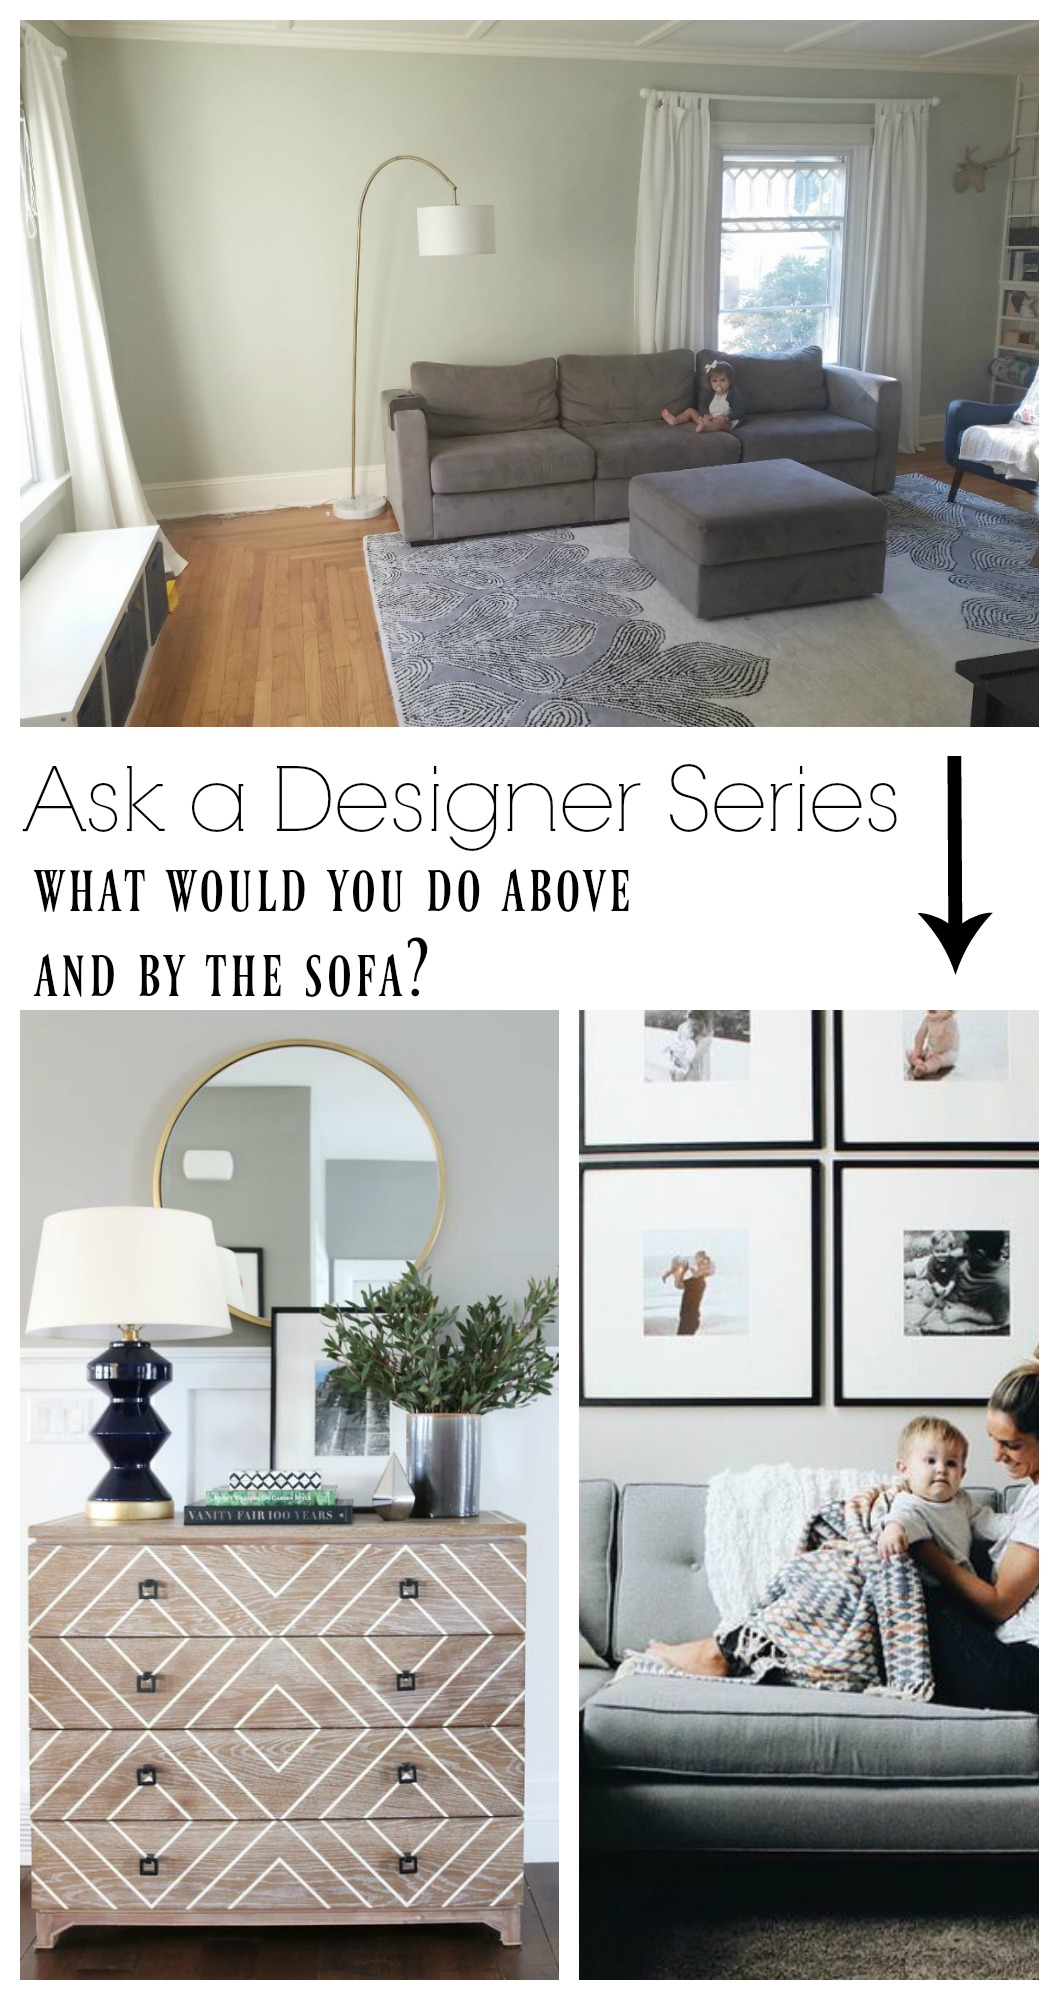 Ask a Designer Series- What would you do by the sofa?